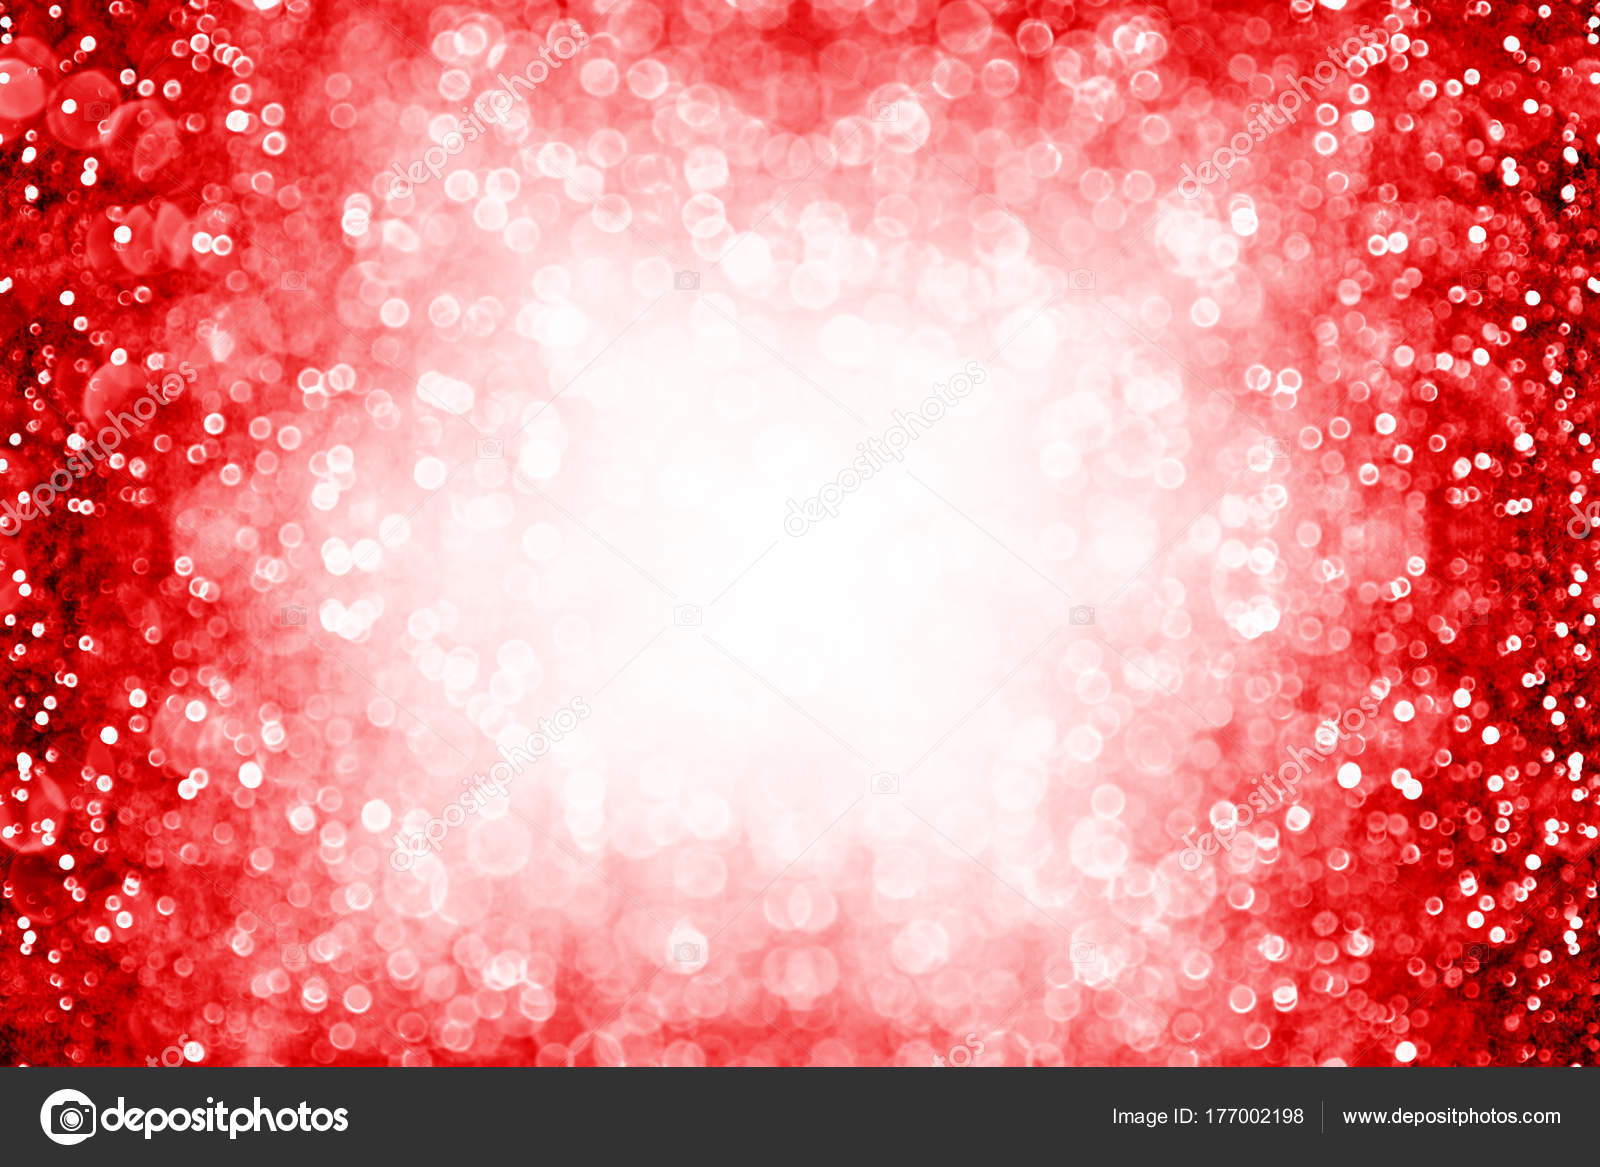 red sparkle background border for birthday new year christmas stock photo